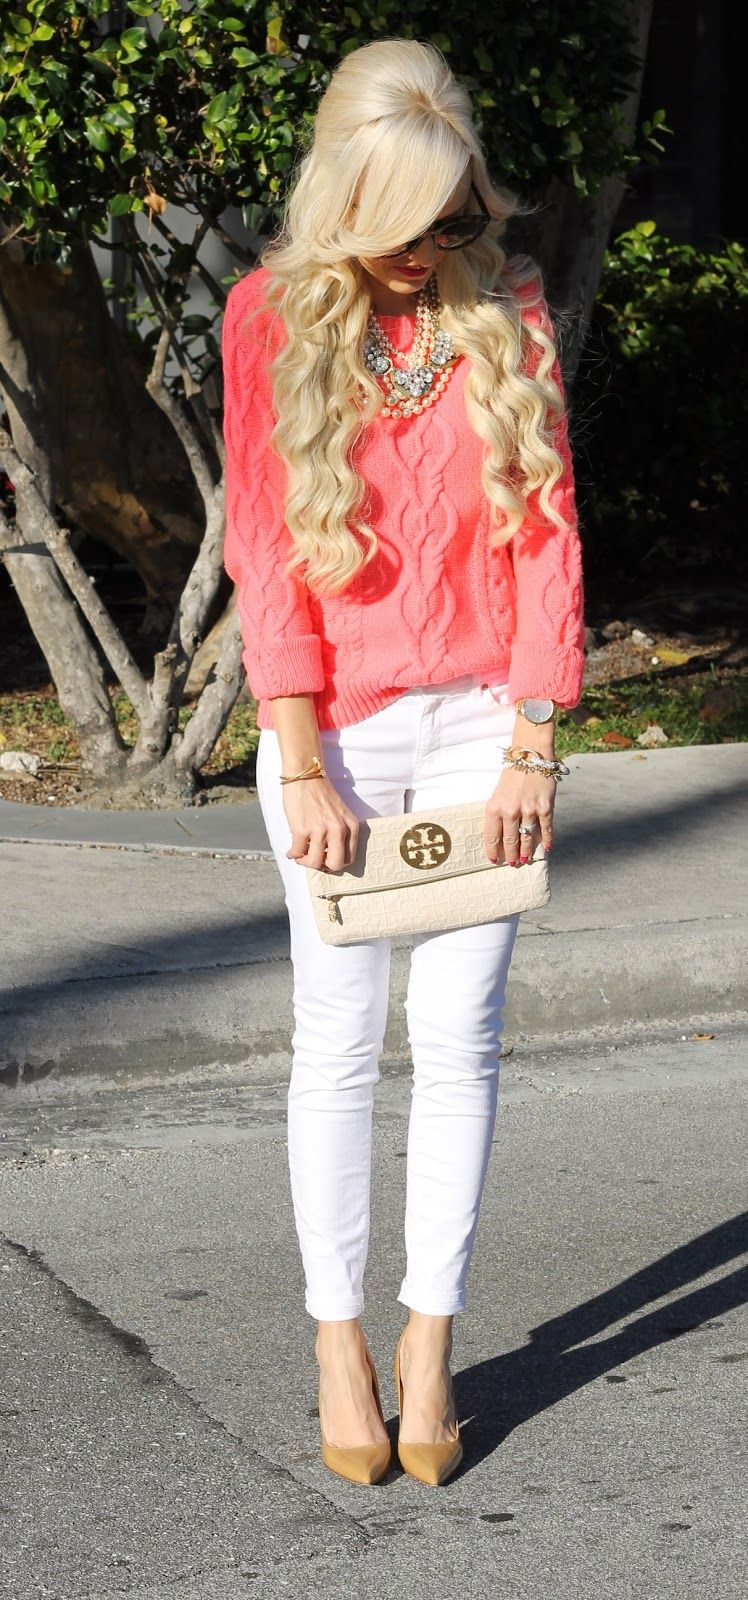 SO ready for spring time! Are you? #RagsExchange #springoutfit #pinksweater www.ragsexchange.com